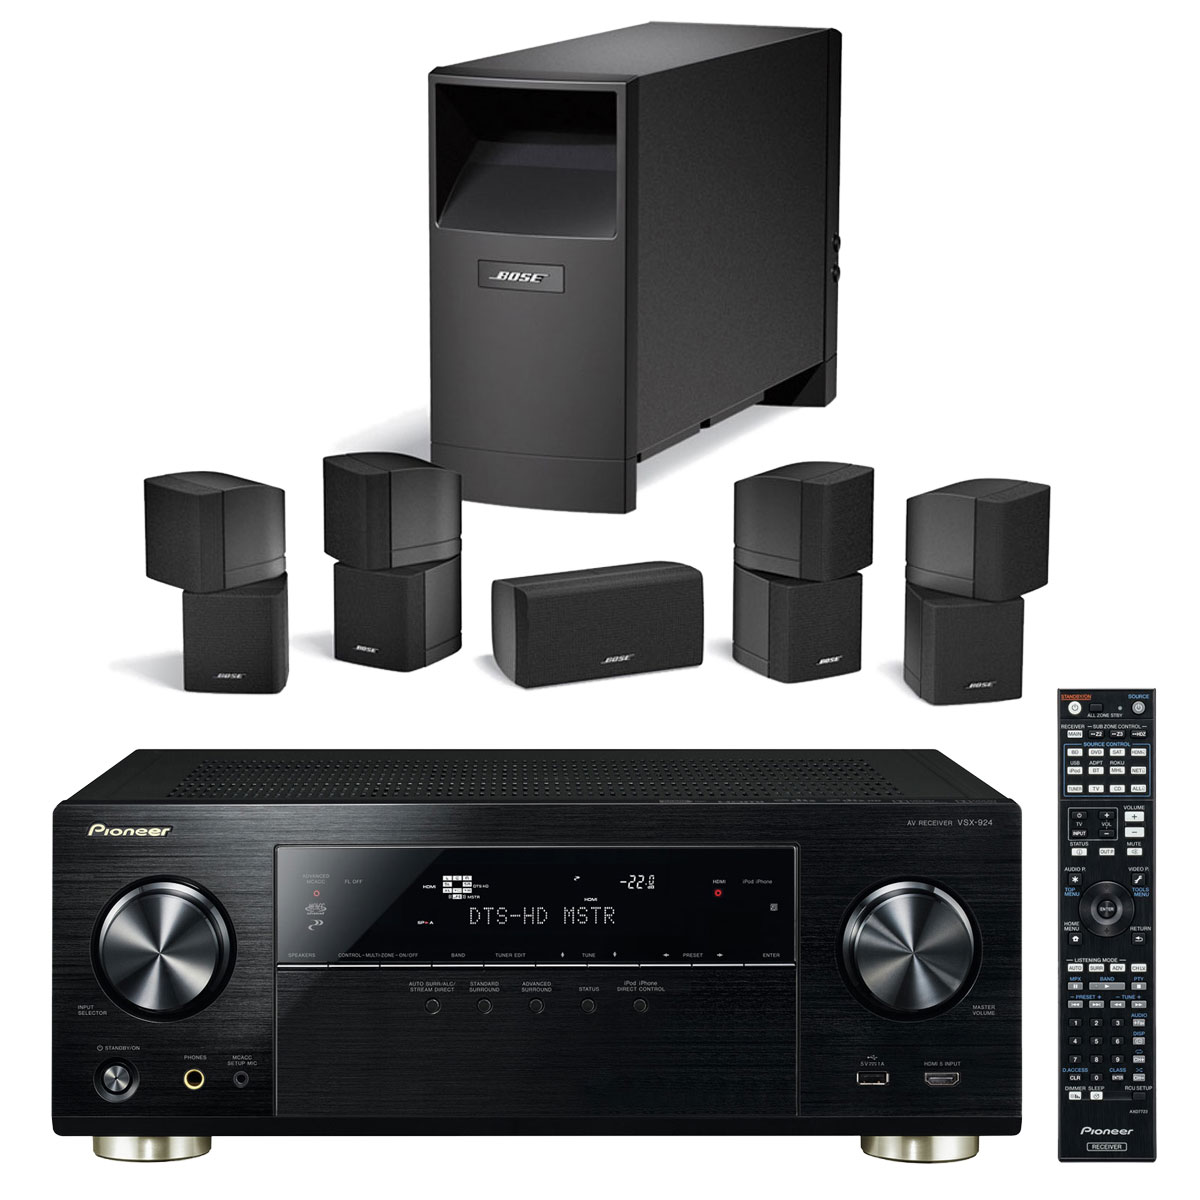 pioneer vsx 924 k noir bose acoustimass 10 noir ensemble home cin ma pioneer sur ldlc. Black Bedroom Furniture Sets. Home Design Ideas